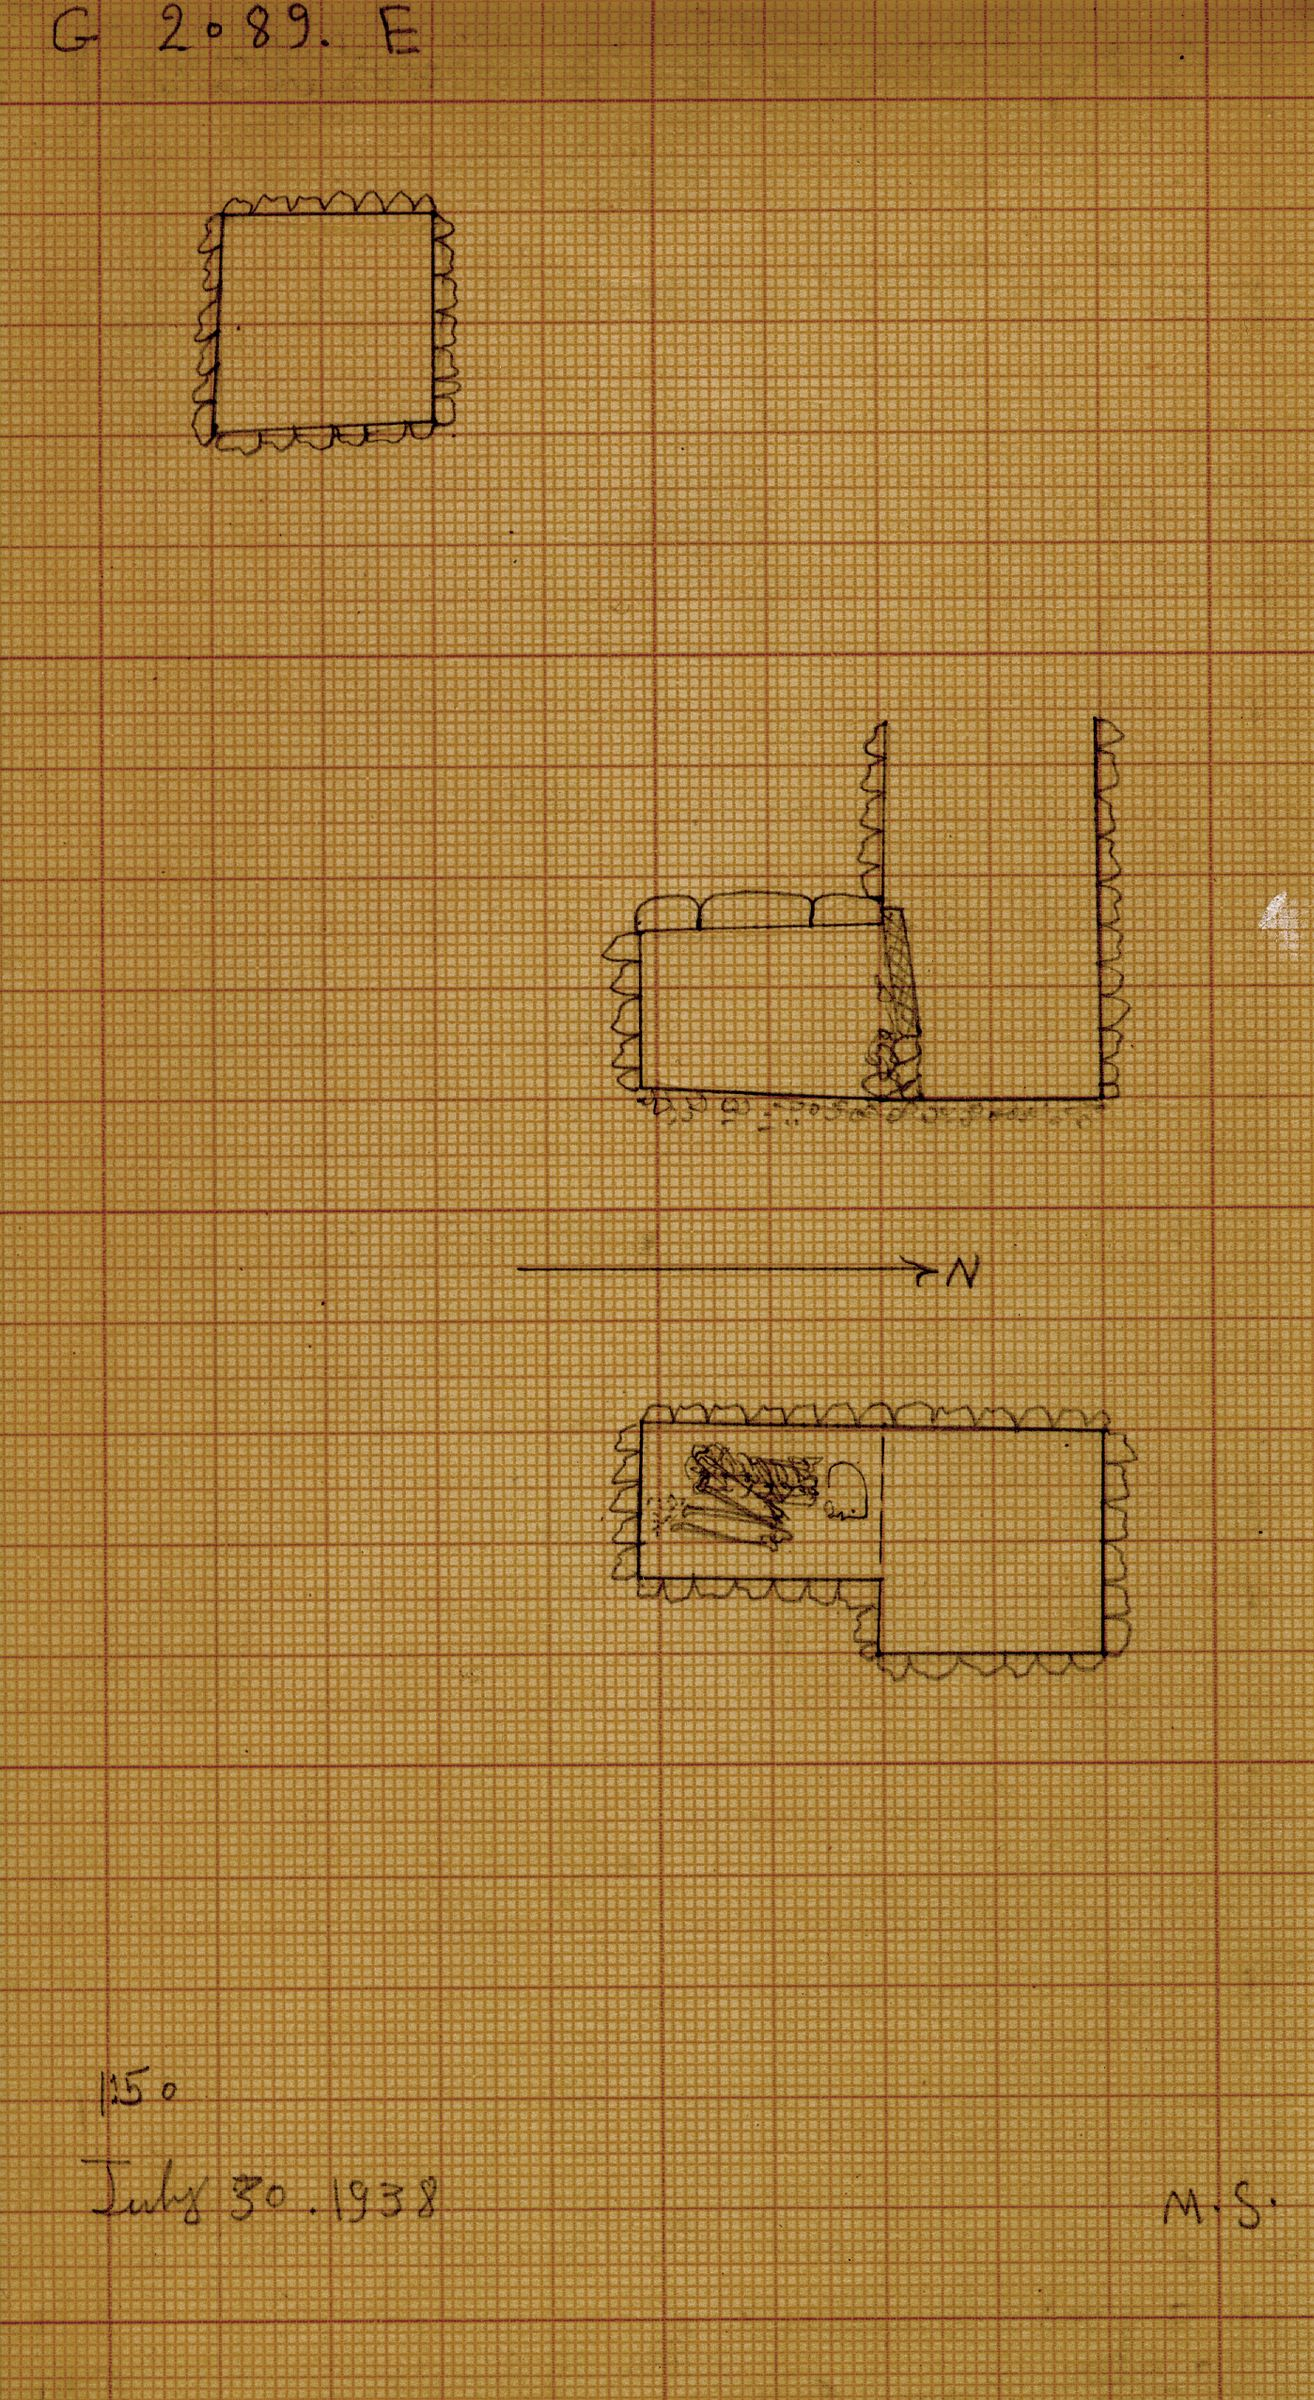 Maps and plans: G 2089, Shaft E